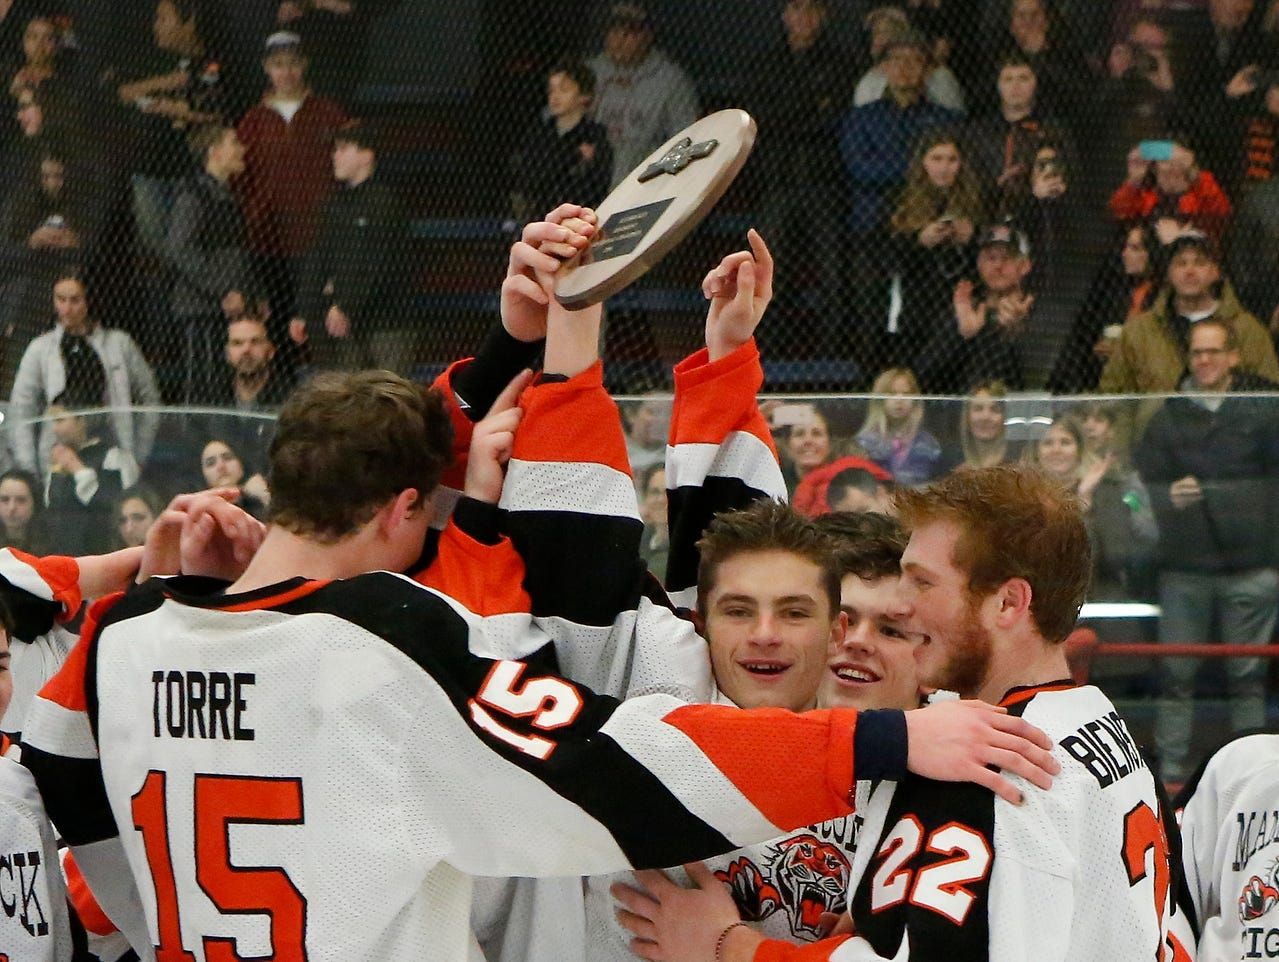 Mamaroneck's James Torre (15), Will Kirk (19) center, and Jason Bienstock (22) hold up the regional championship plaque after their 5-1 win over Massena in the division 1 regional finals at Sport-O-Rama Ice Rink in Monsey on Saturday, March 05, 2016.